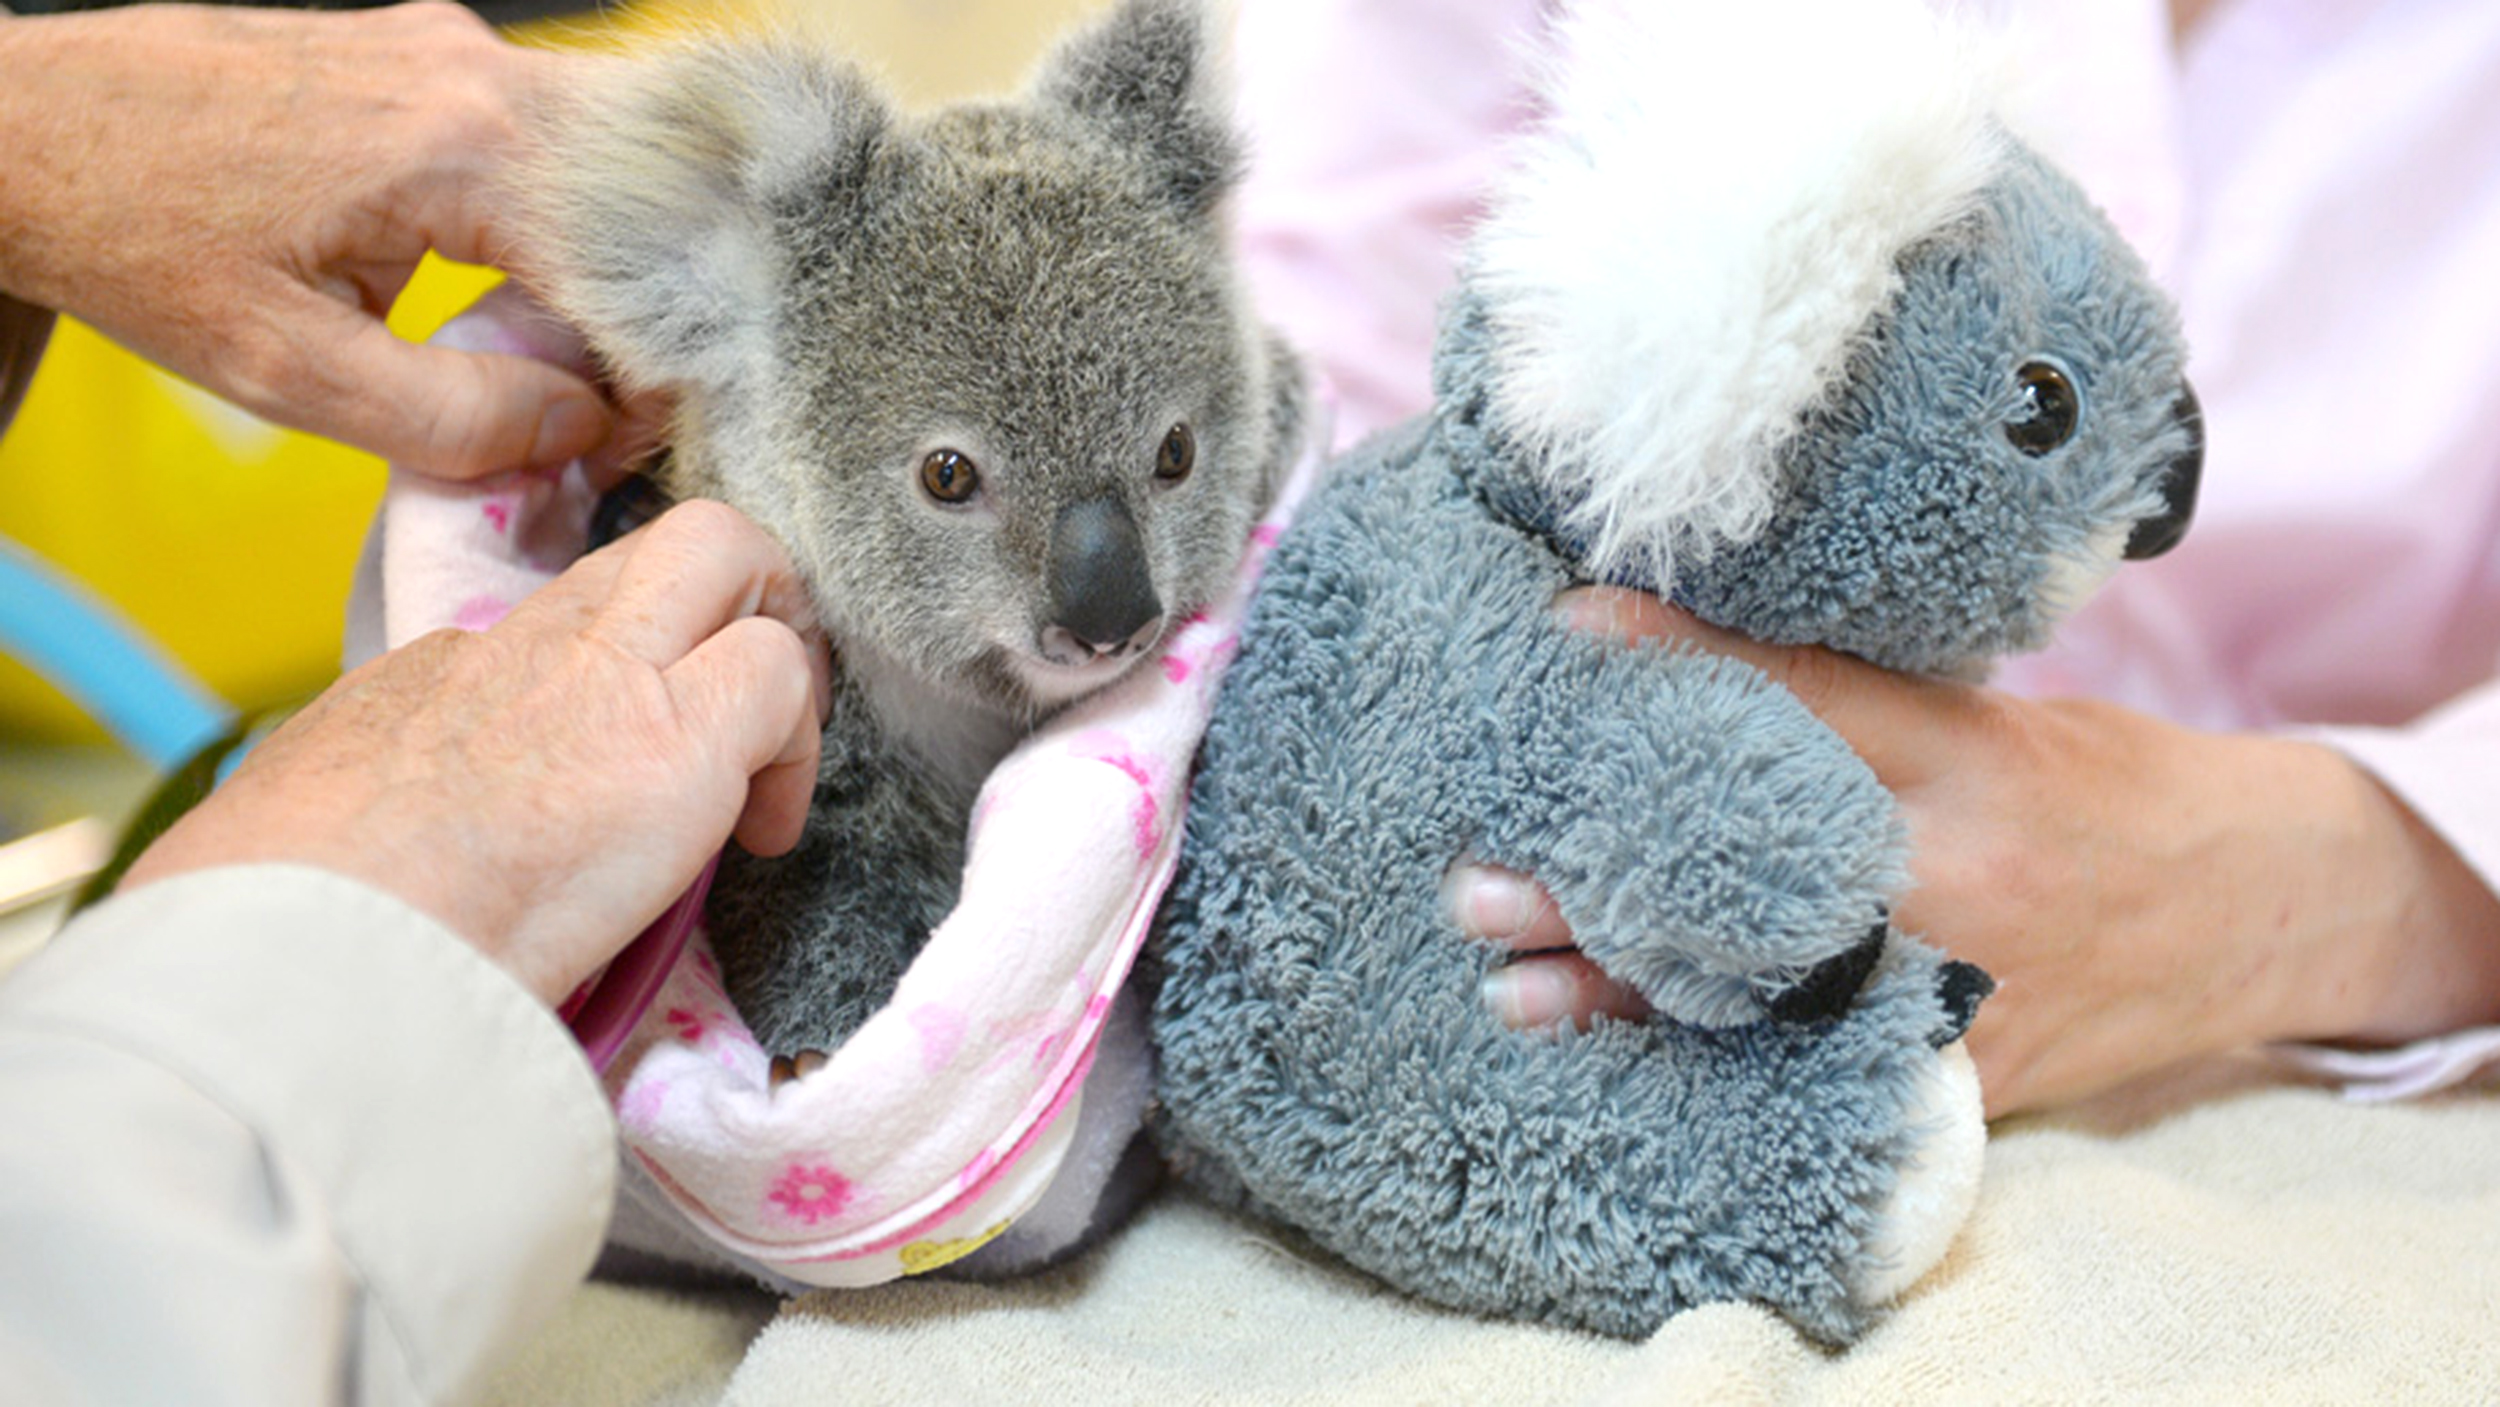 Orphaned Baby Koala Cuddles Stuffed Animal After Losing